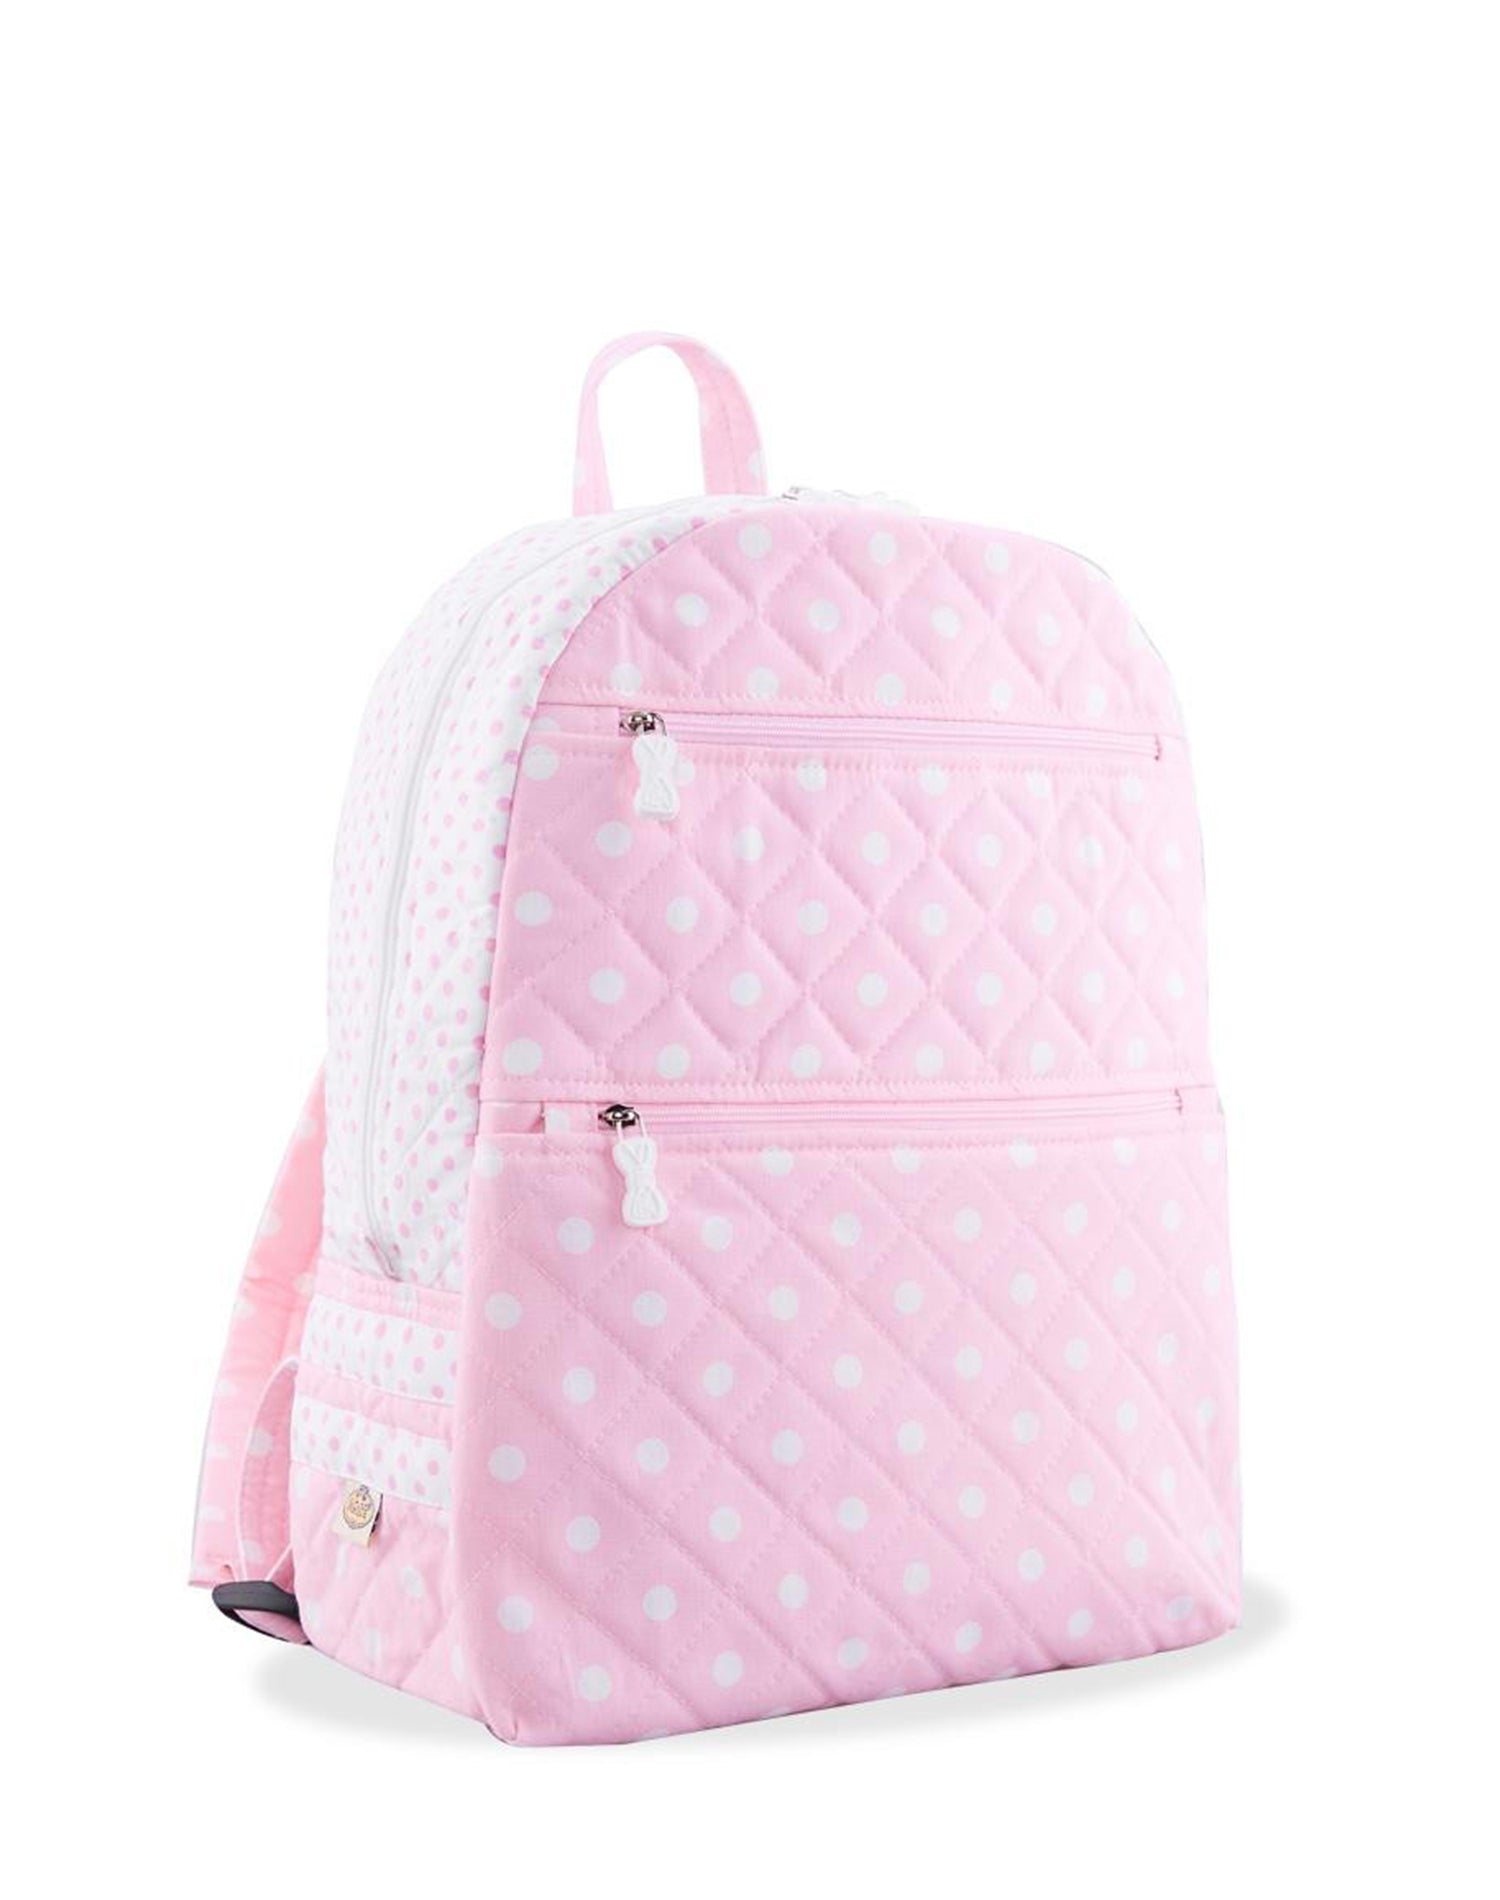 Pink Double Zip Polka Dot Backpack.粉紅色雙拉鍊波點背囊